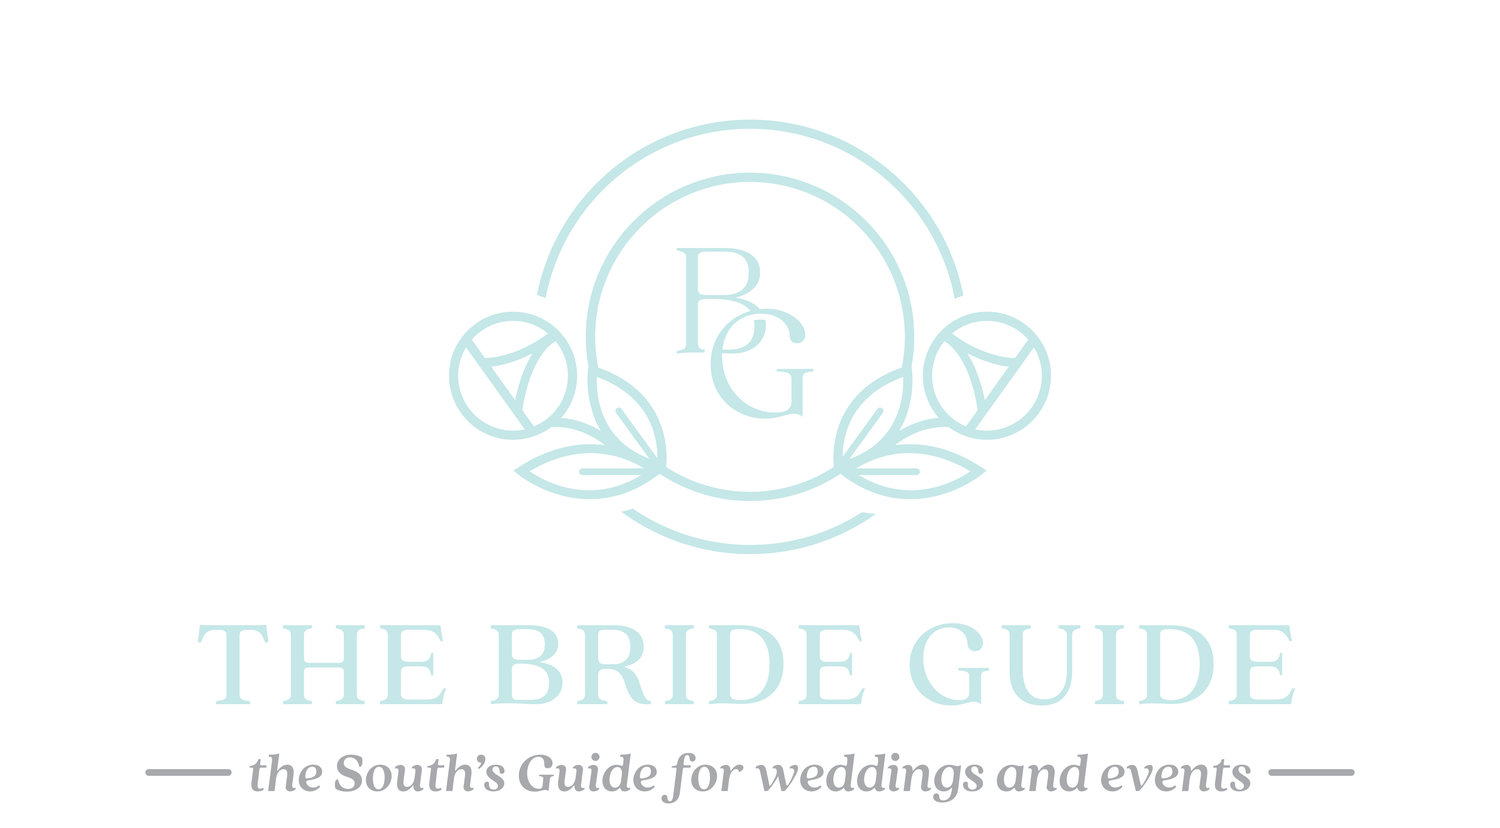 The Bride Guide